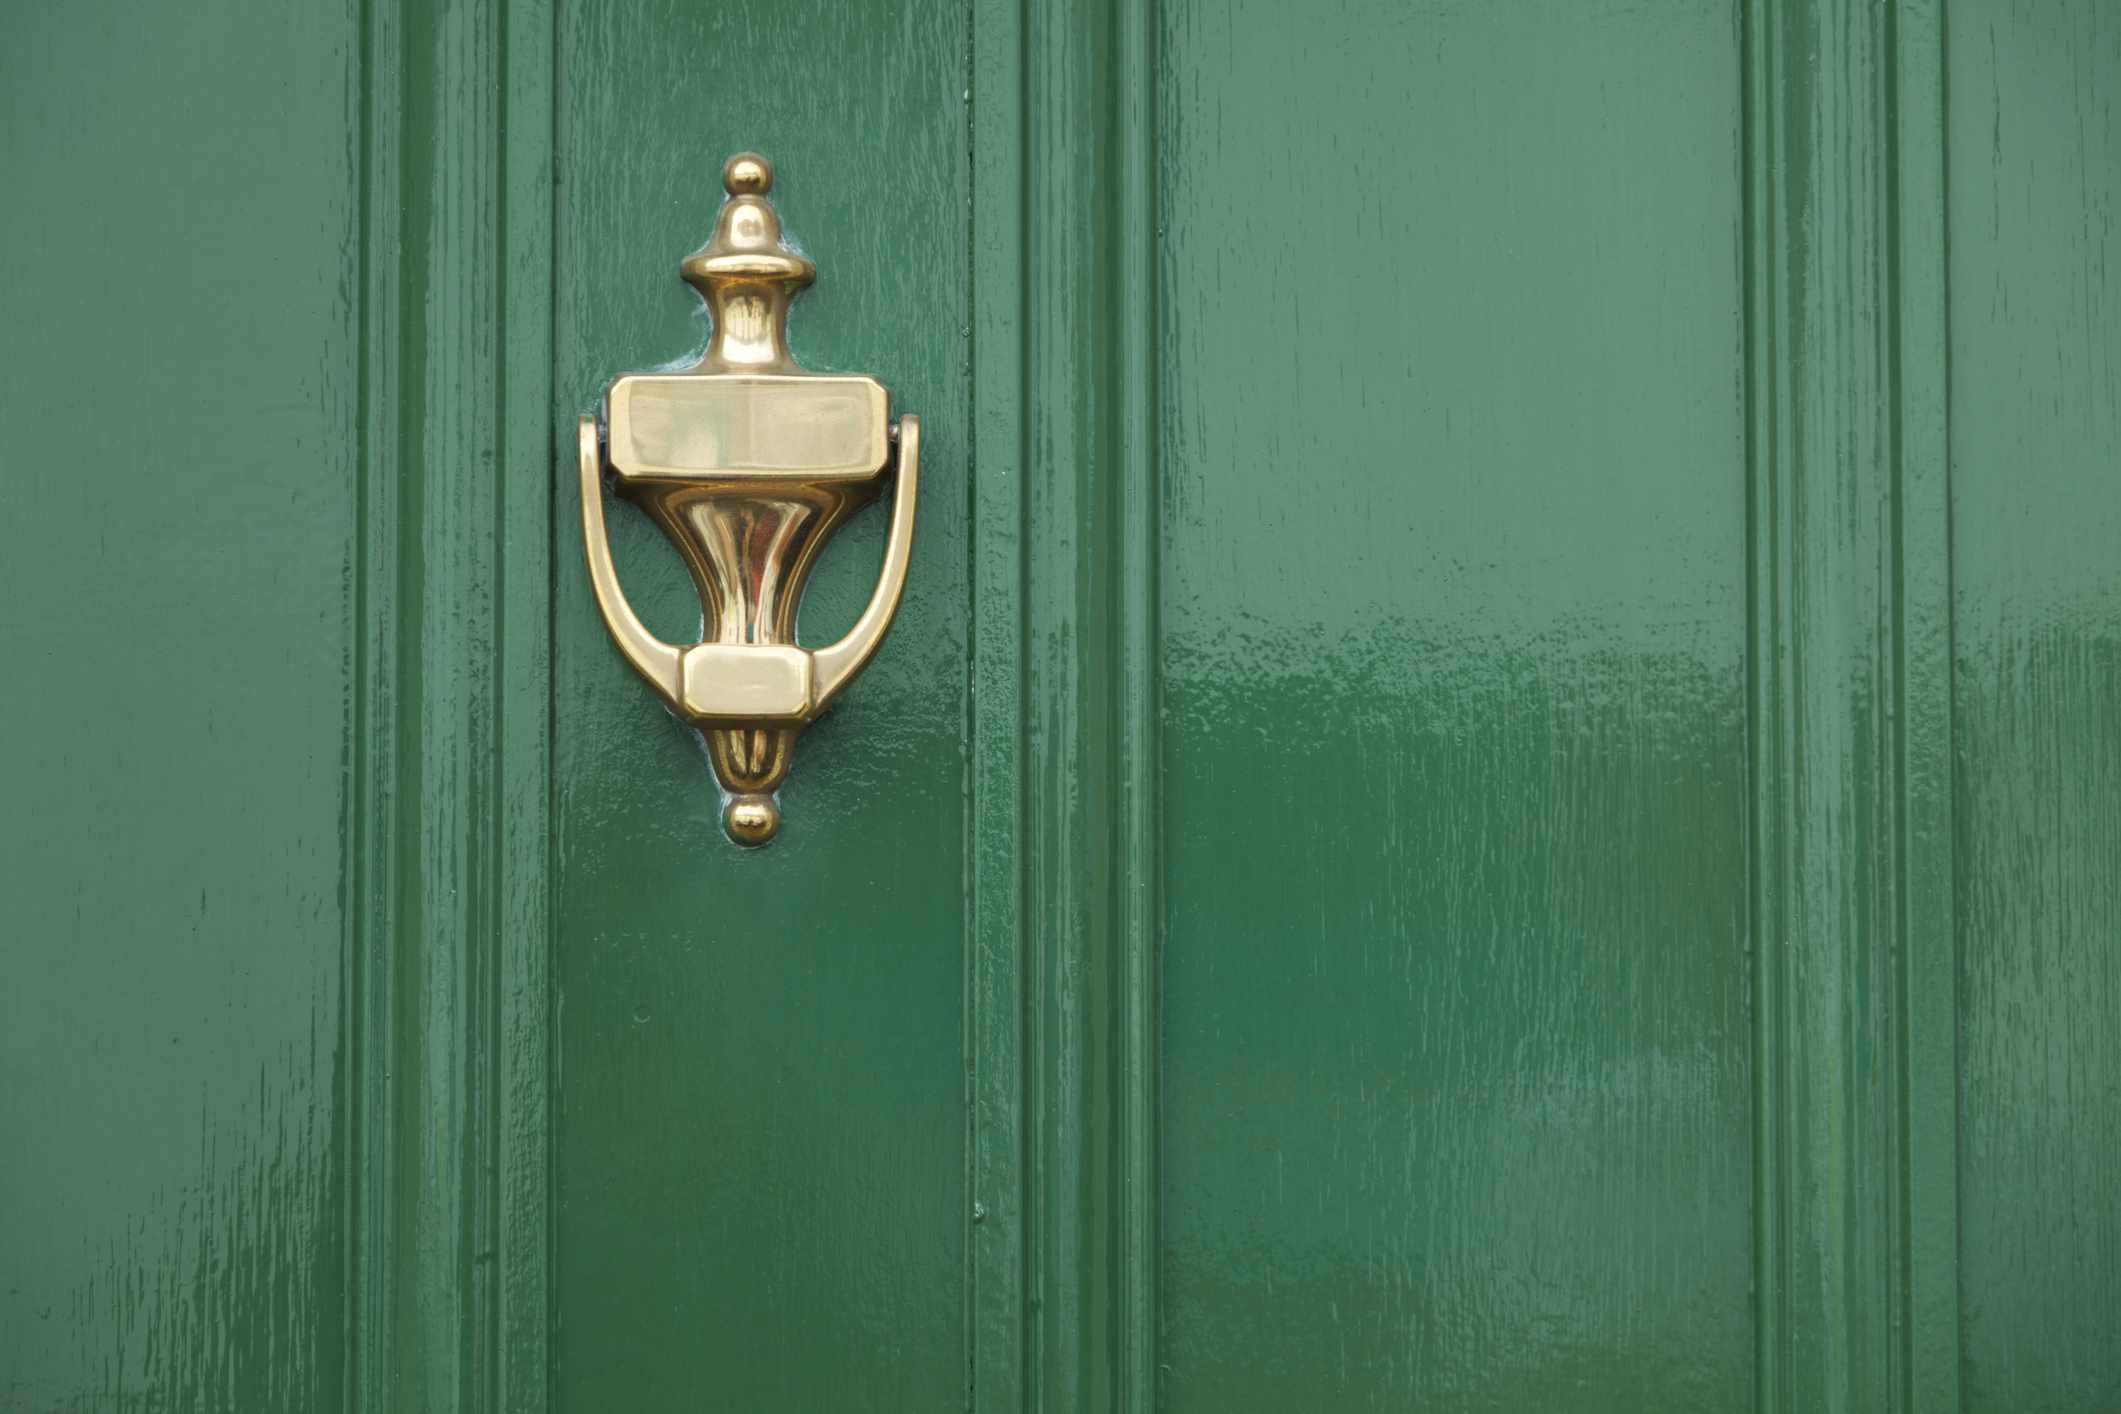 Close up view of green door with brass knocker.